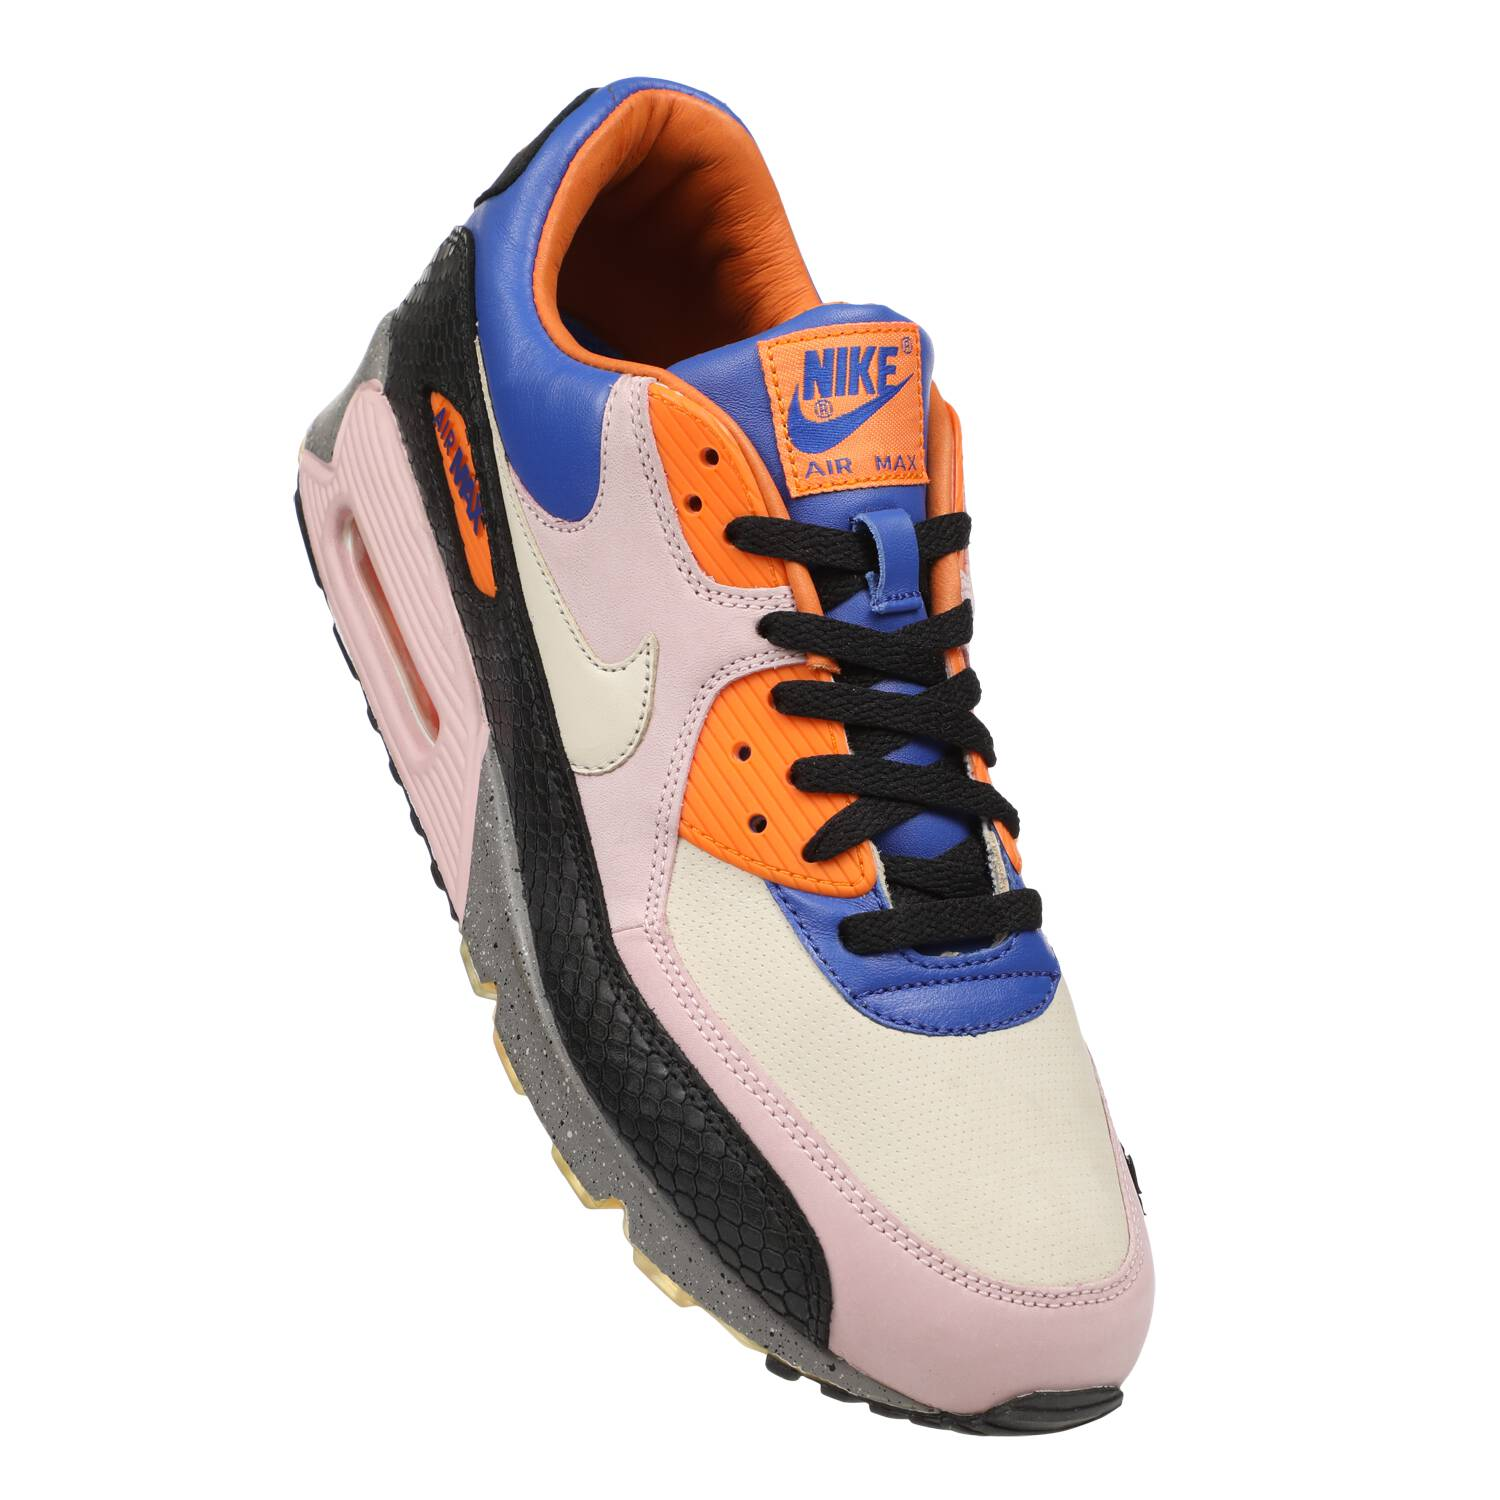 talento agitación calibre  Air Max 90 KING OF THE MOUNTAIN